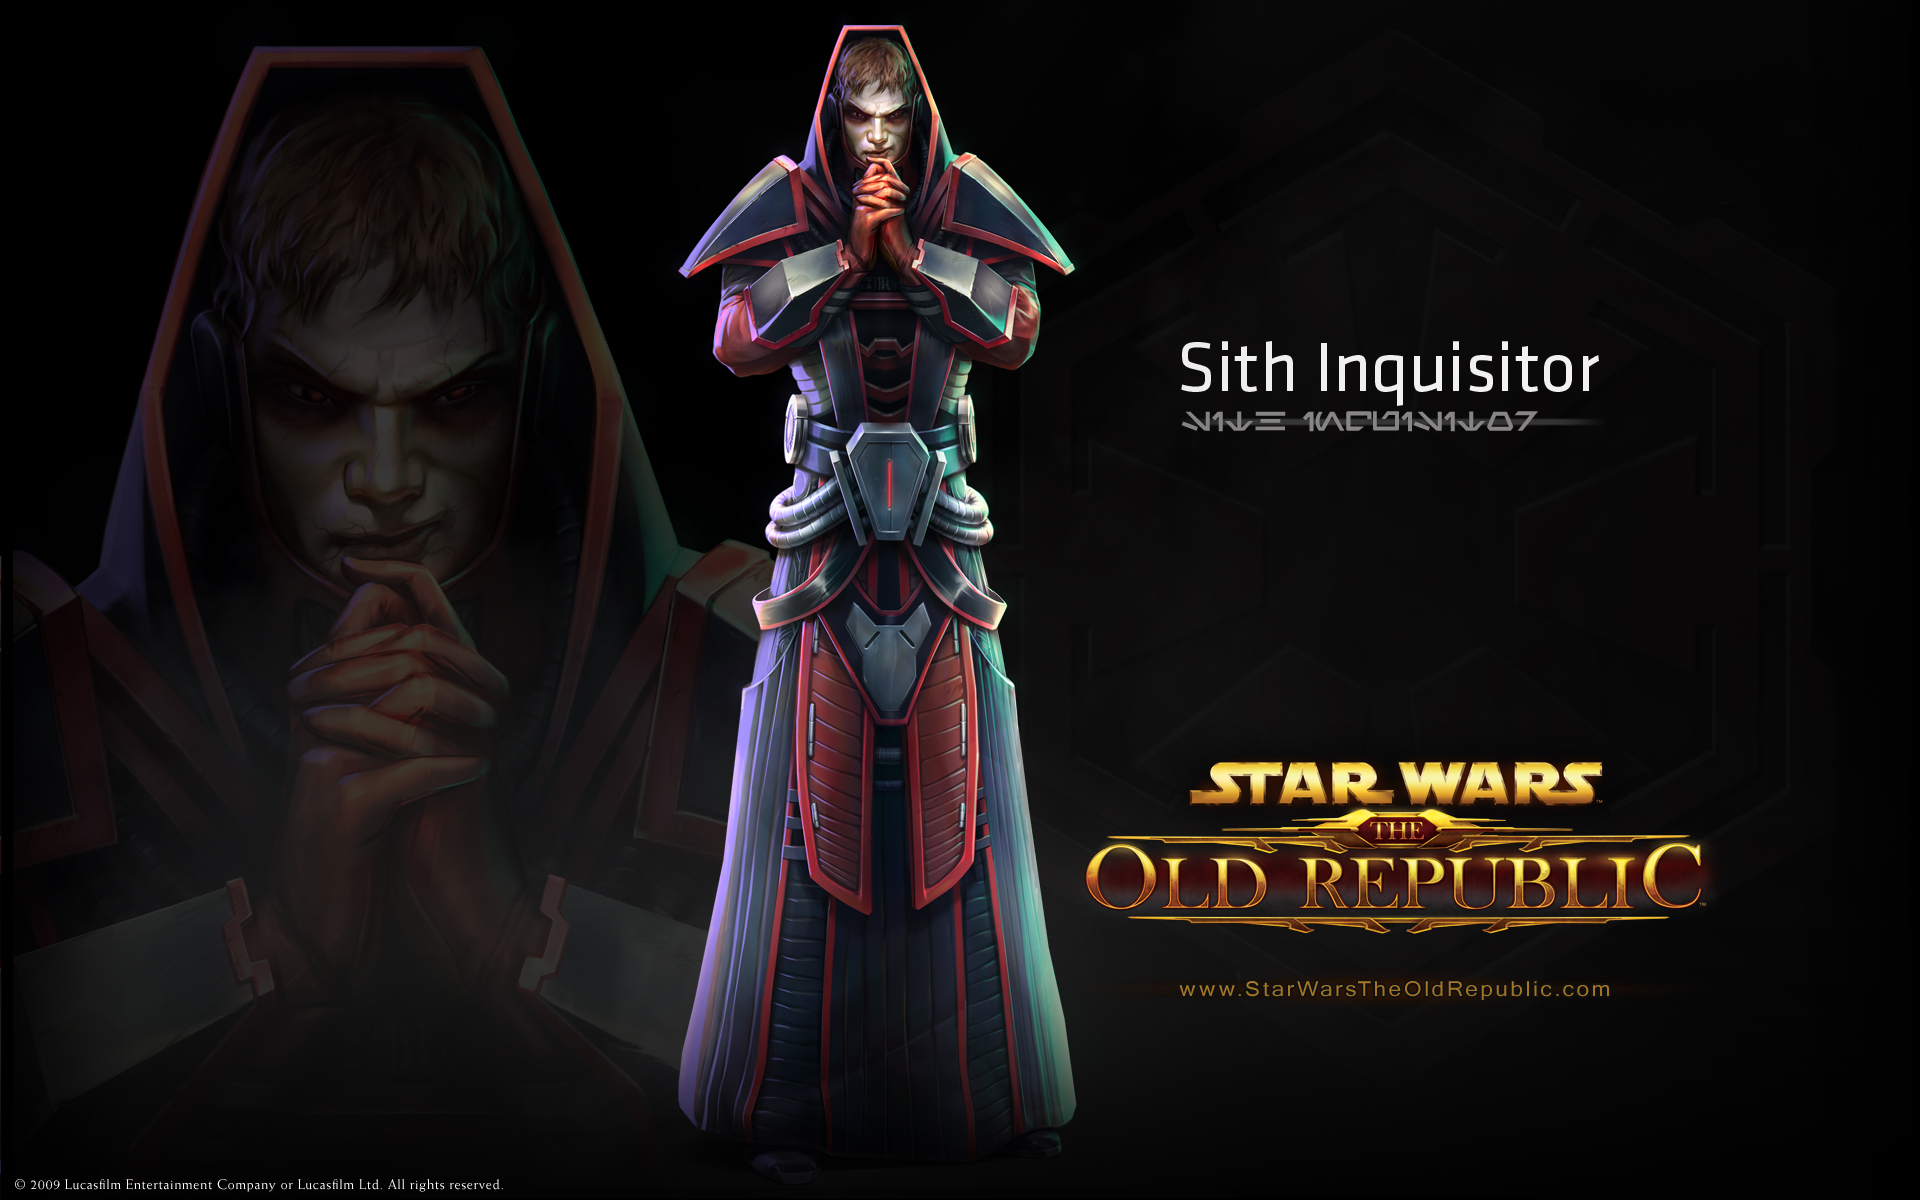 Sith Inquisitor [wide] 1920x1200